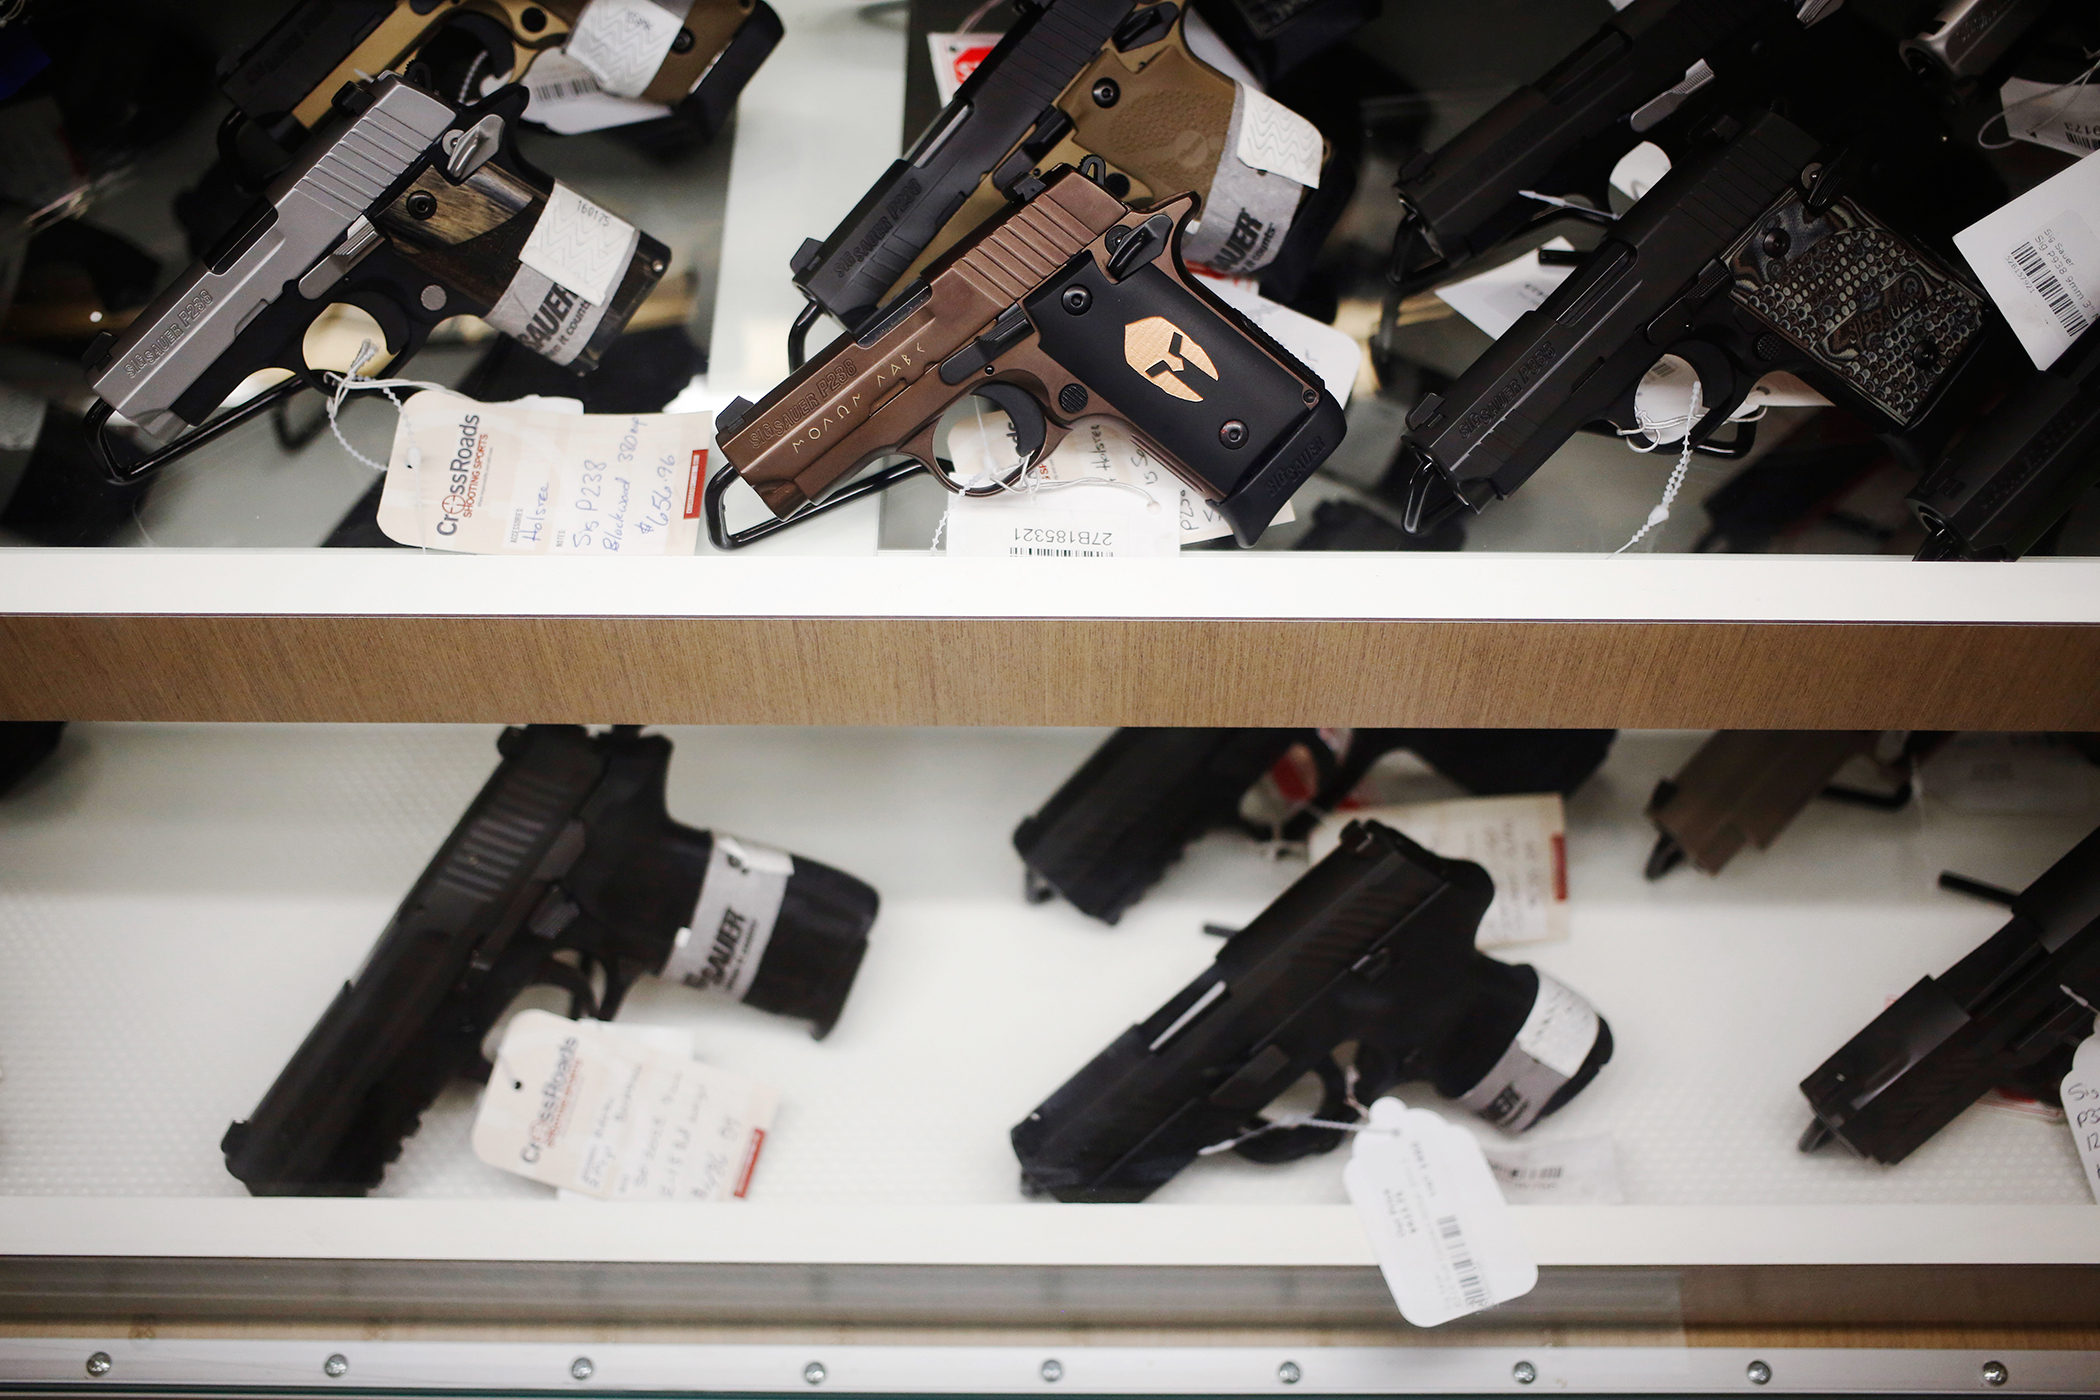 Handguns manufactured by SIG Sauer GmbH are displayed for sale during a campaign event for Donald Trump, president and chief executive of Trump Organization Inc. and 2016 Republican presidential candidate, at CrossRoads Shooting Sports in Johnston, Iowa, U.S., on January 30, 2016.